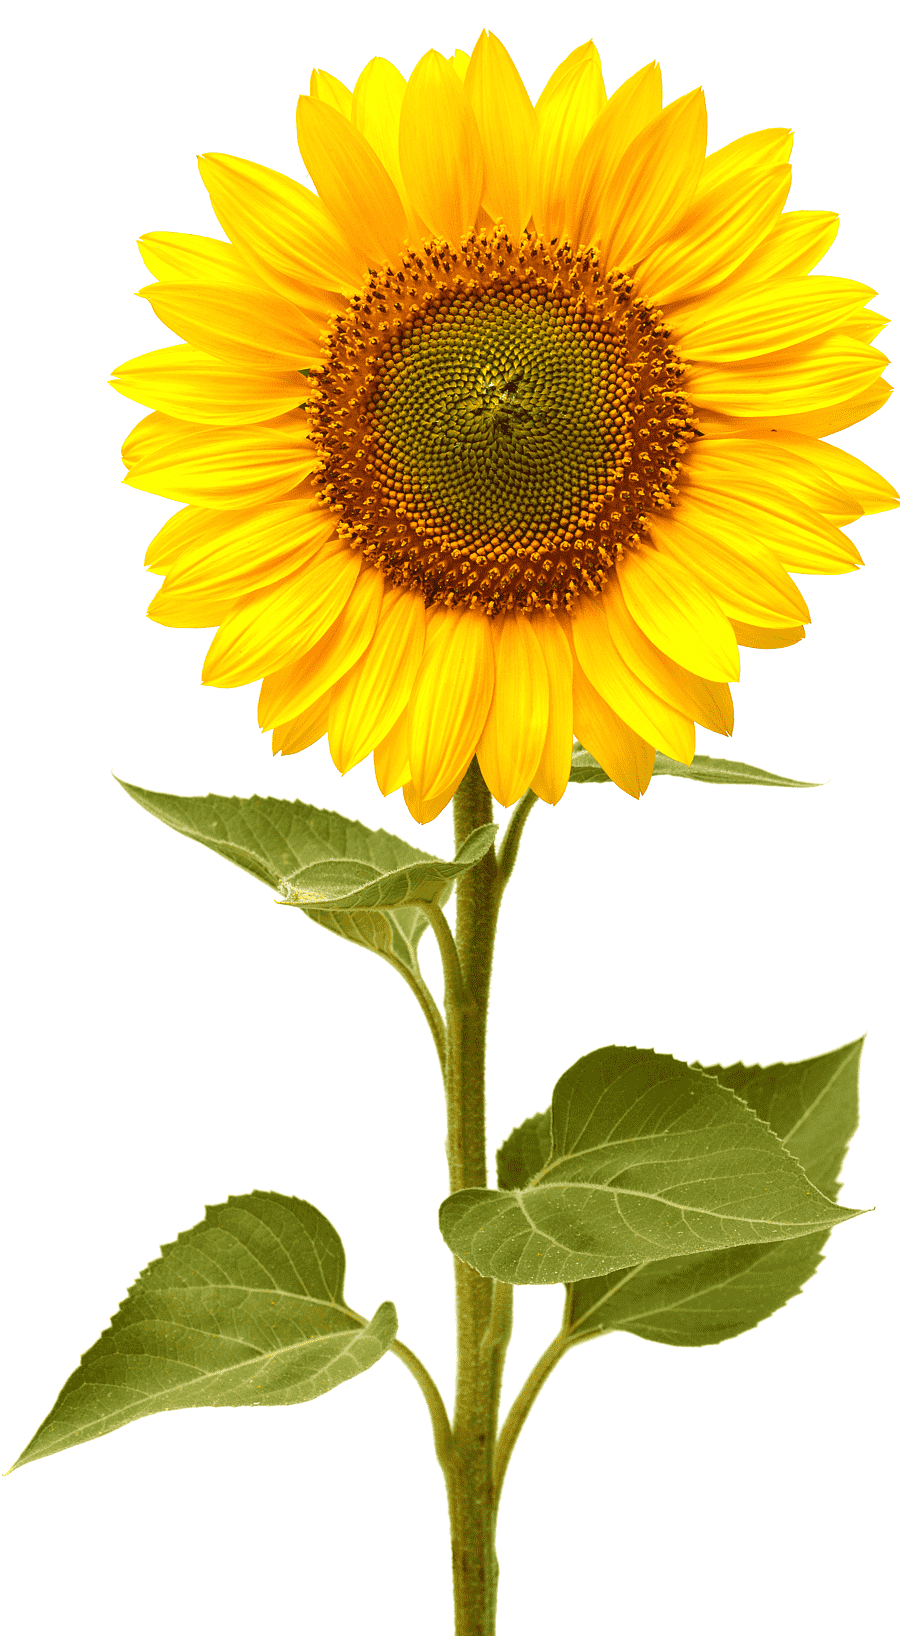 Common Sunflower Life Cycle Of A Sunflower This Is The Sunflower Sunflower Seed Sunflower Sunflower Plant Stem Png Pngegg